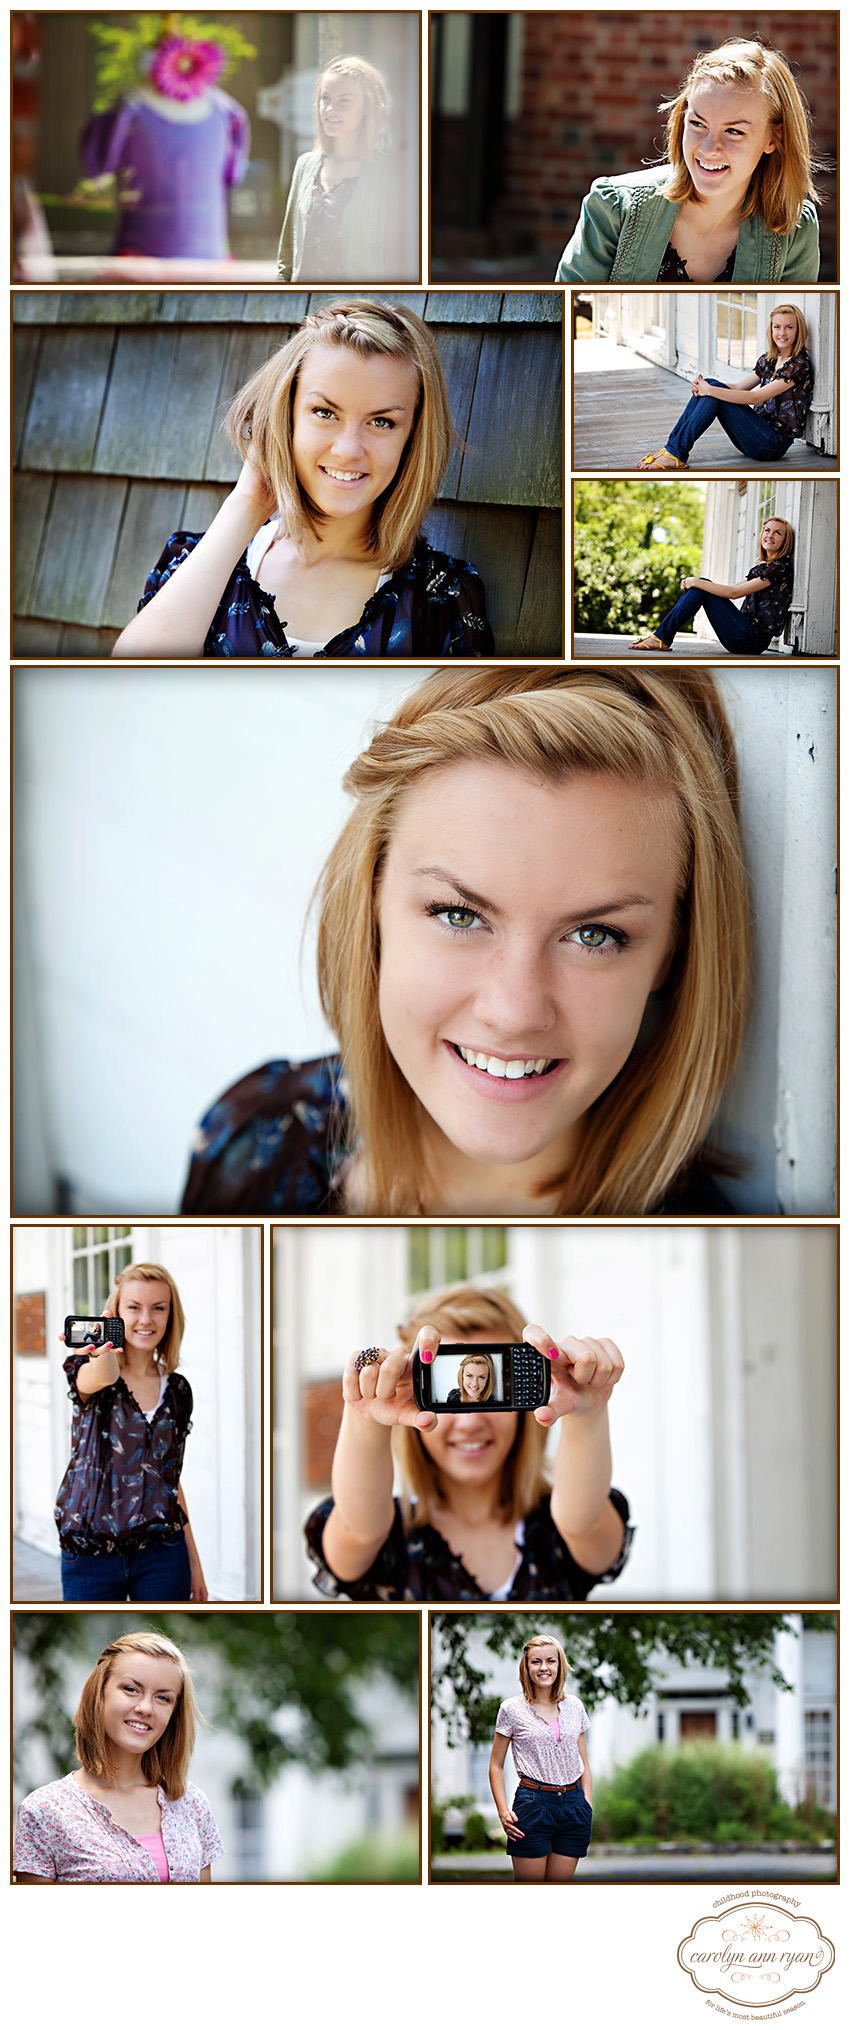 Classic Waxhaw, NC Senior Portraits by Carolyn Ann Ryan